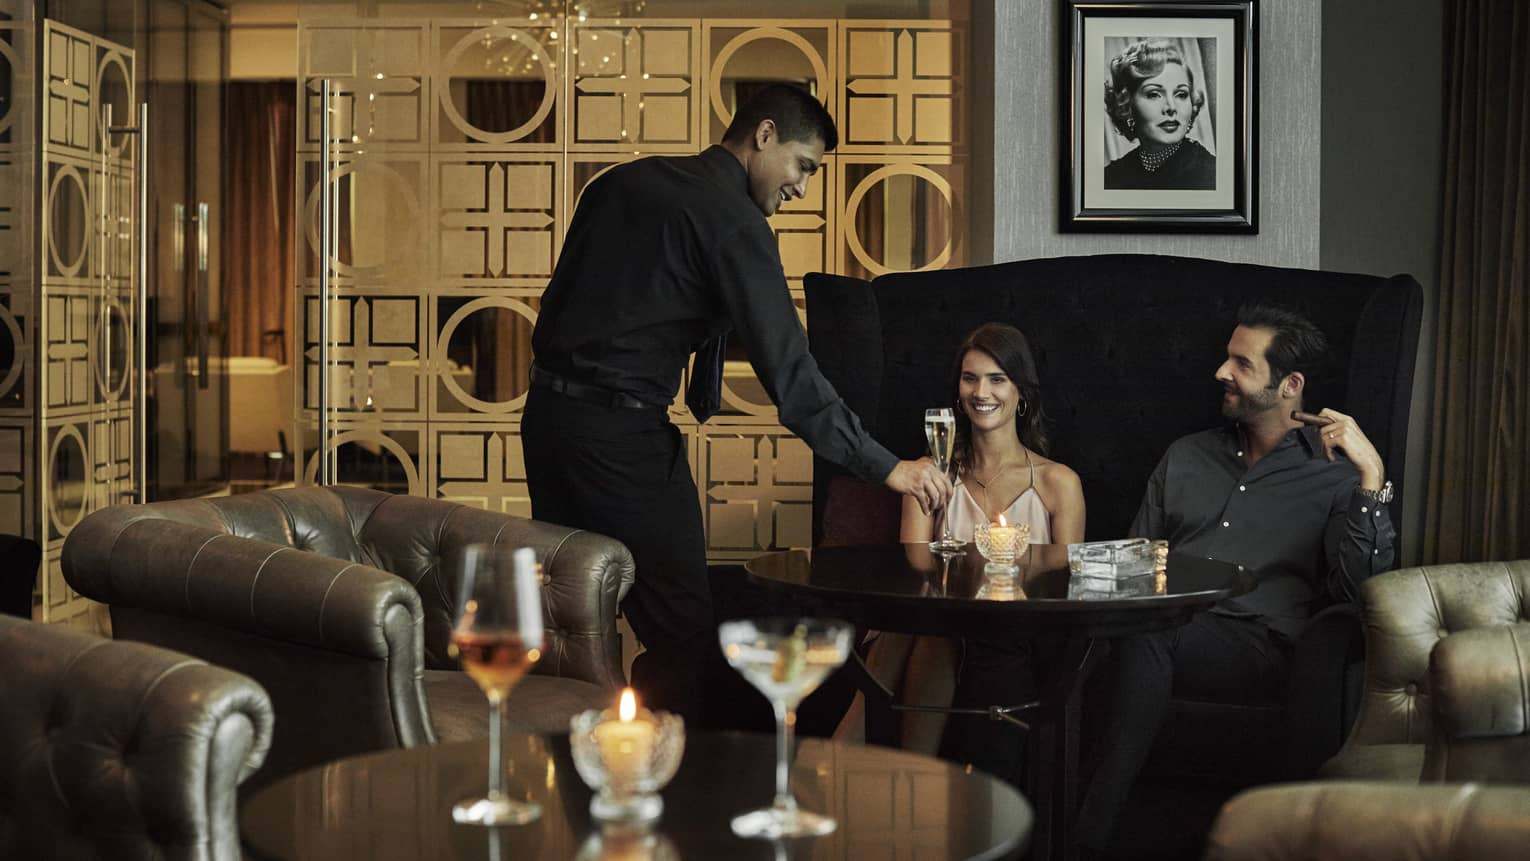 Zsa Zsa lounge staff places glass of Champagne on table in front of smiling couple